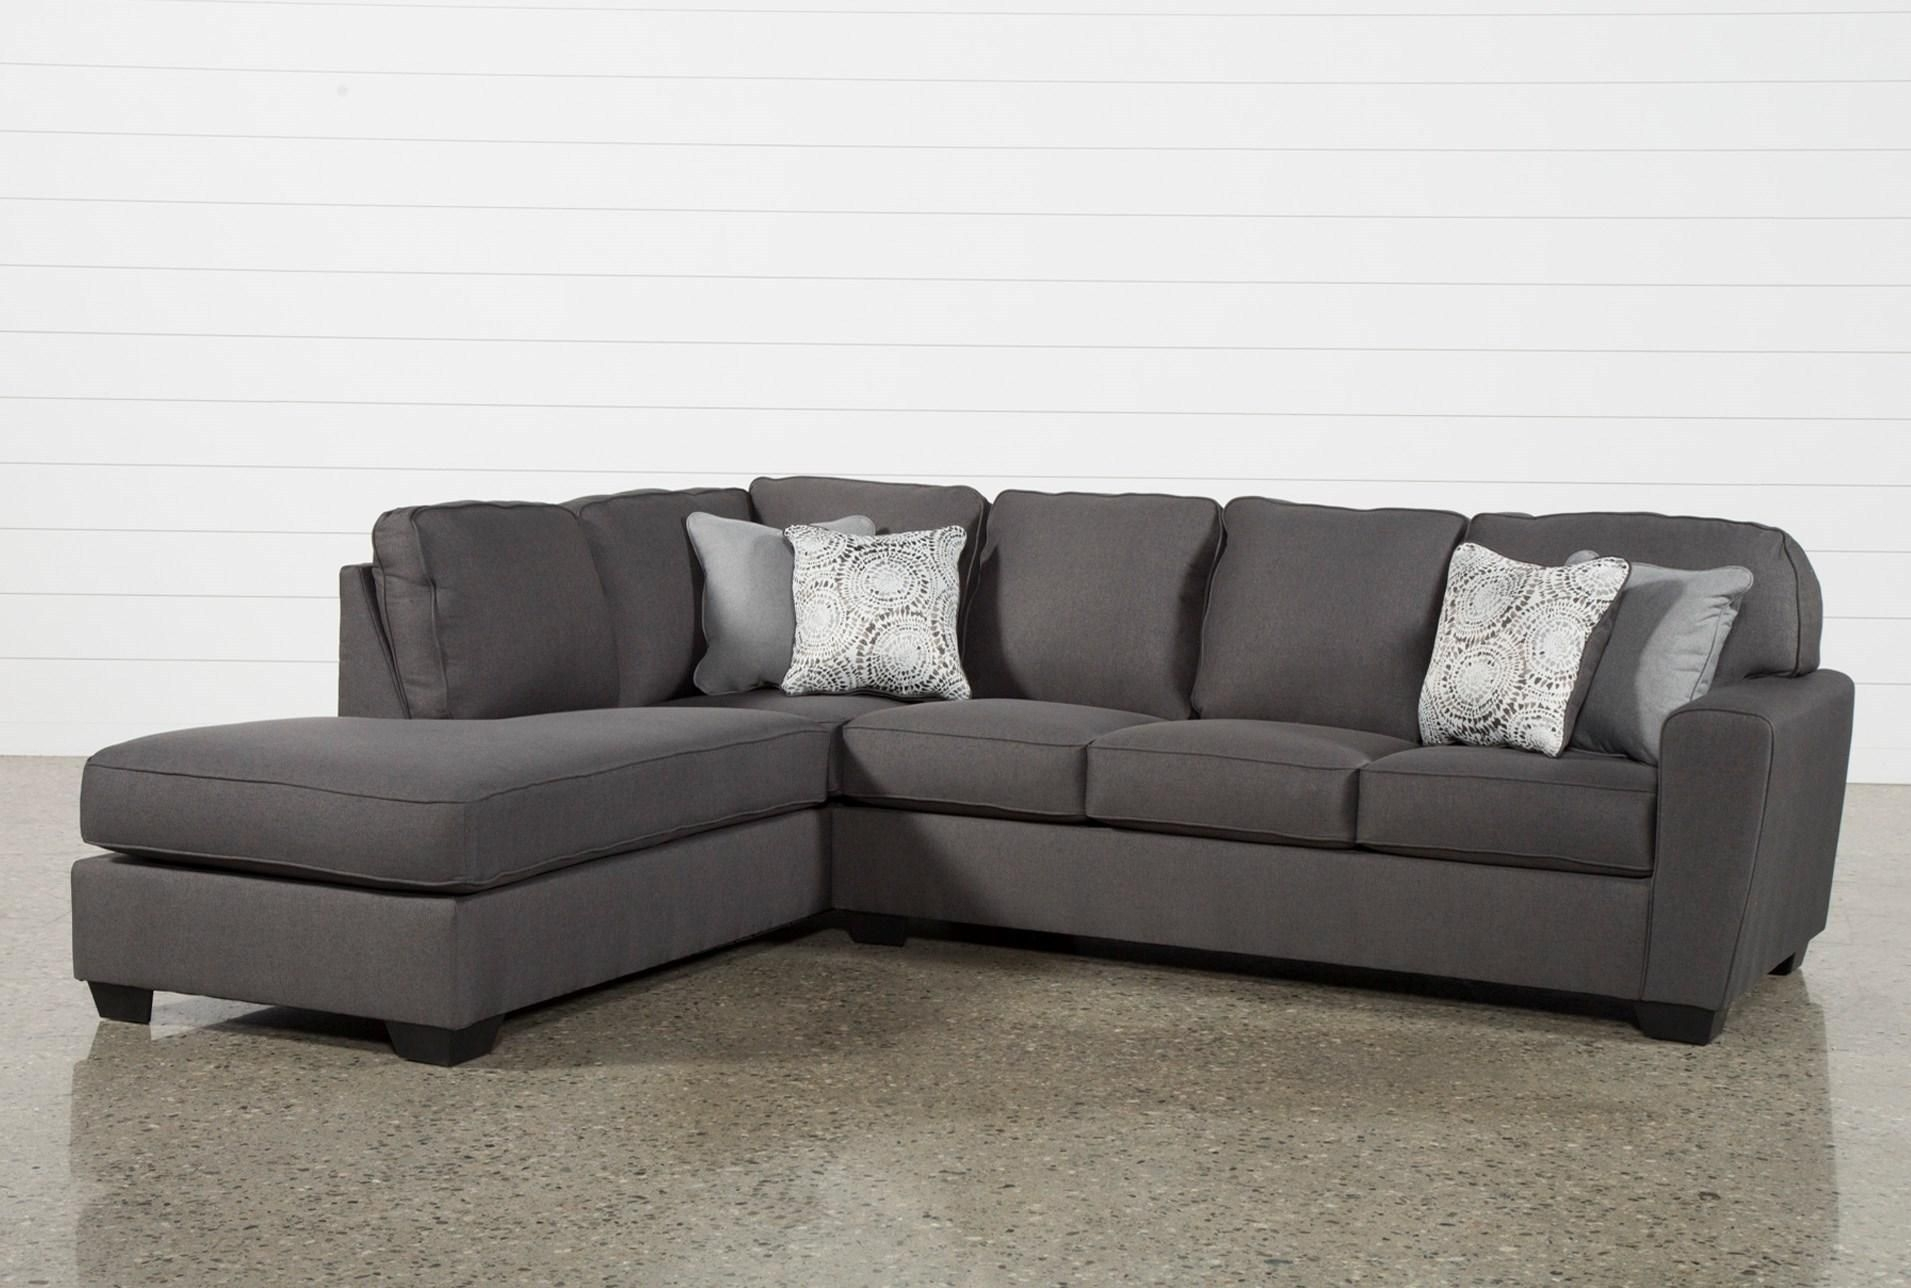 Mcdade Graphite 2 Piece Sectional W/laf Chaise | Graphite, Living with regard to Arrowmask 2 Piece Sectionals With Raf Chaise